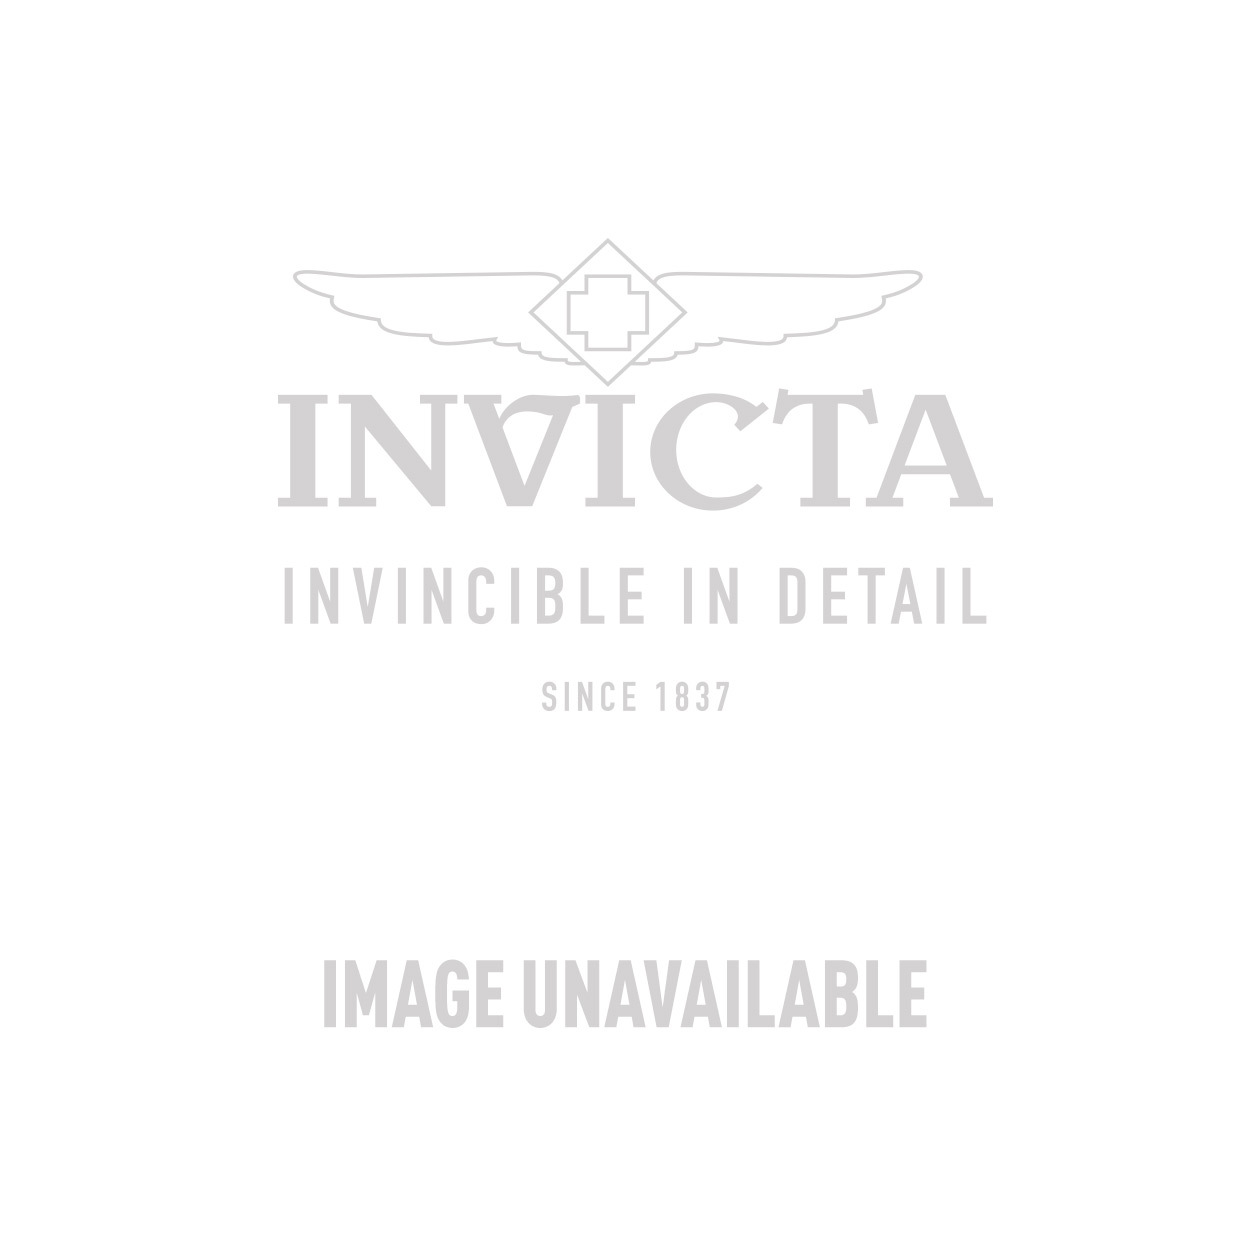 Invicta S. Coifman Swiss Movement Quartz Watch - Gold, Stainless Steel case with Gold, Steel tone Stainless Steel band - Model SC0359